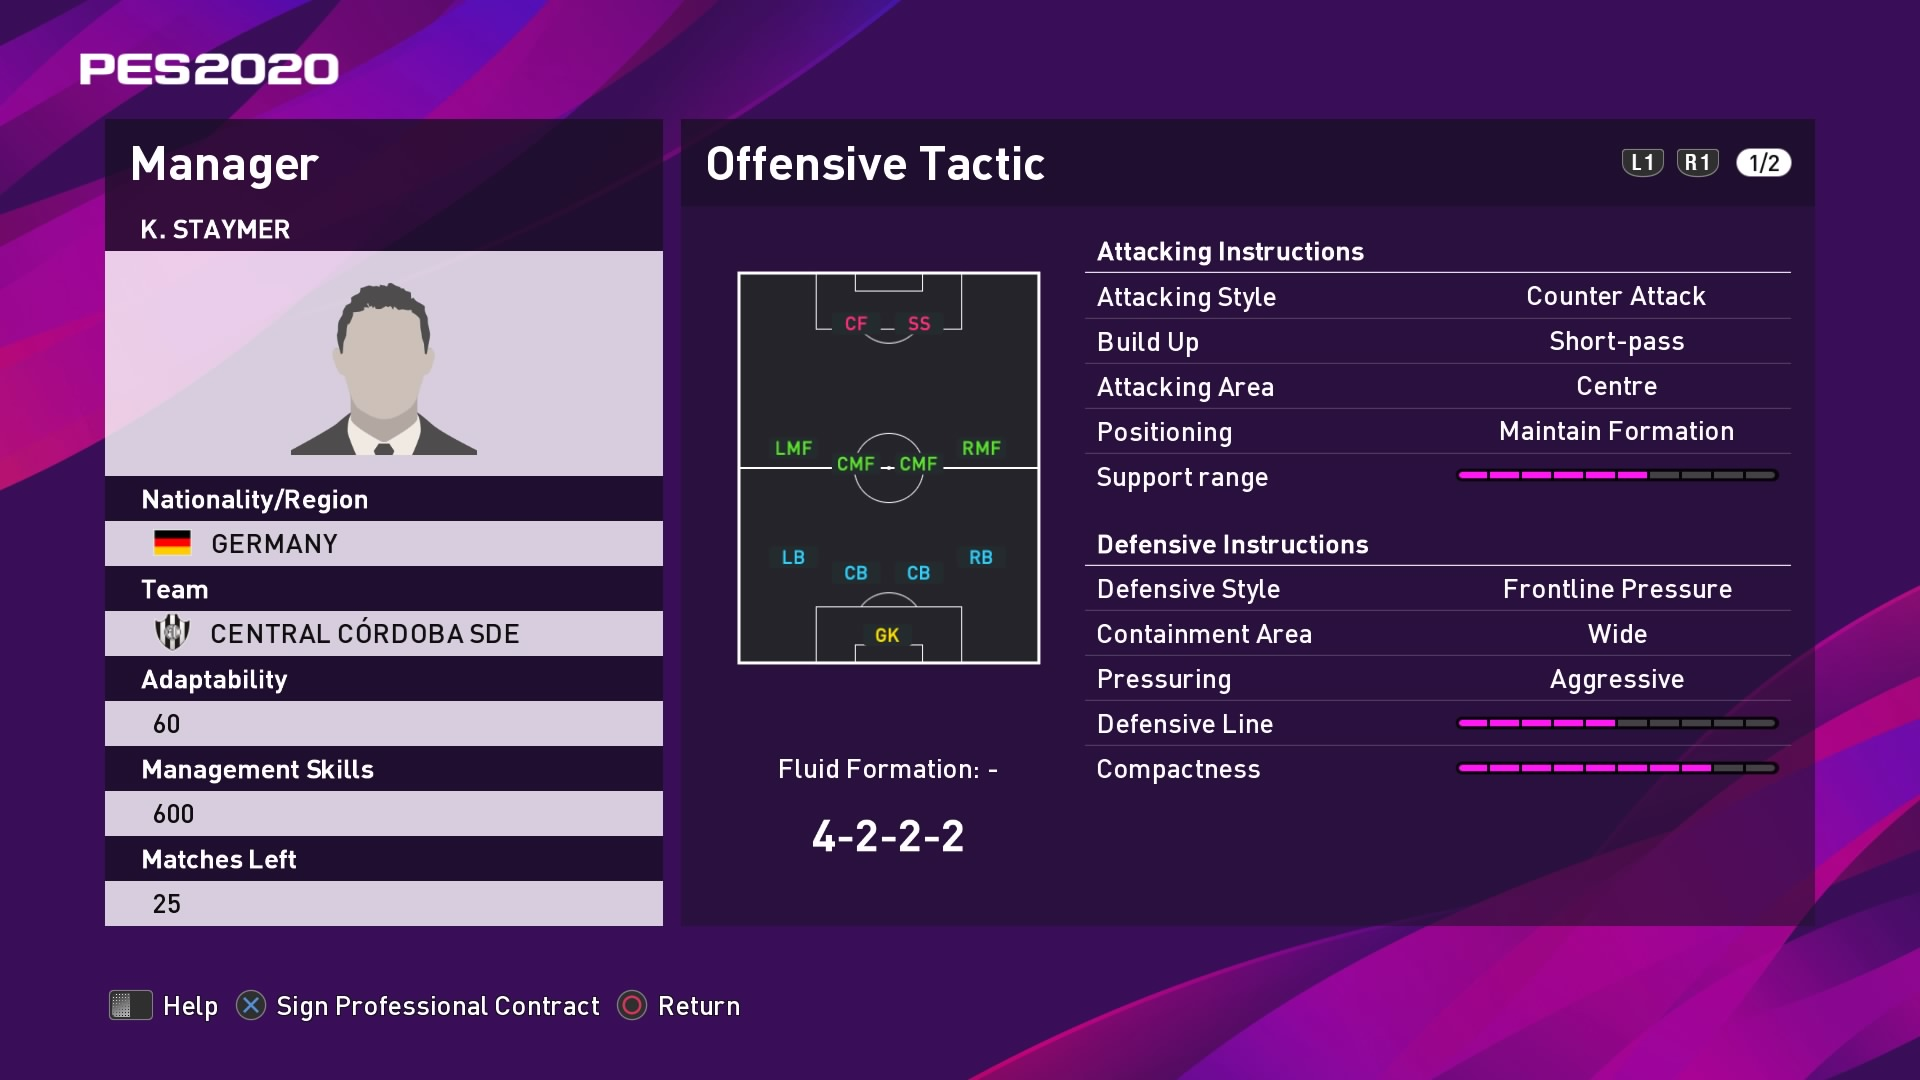 K. Staymer Offensive Tactic in PES 2020 myClub